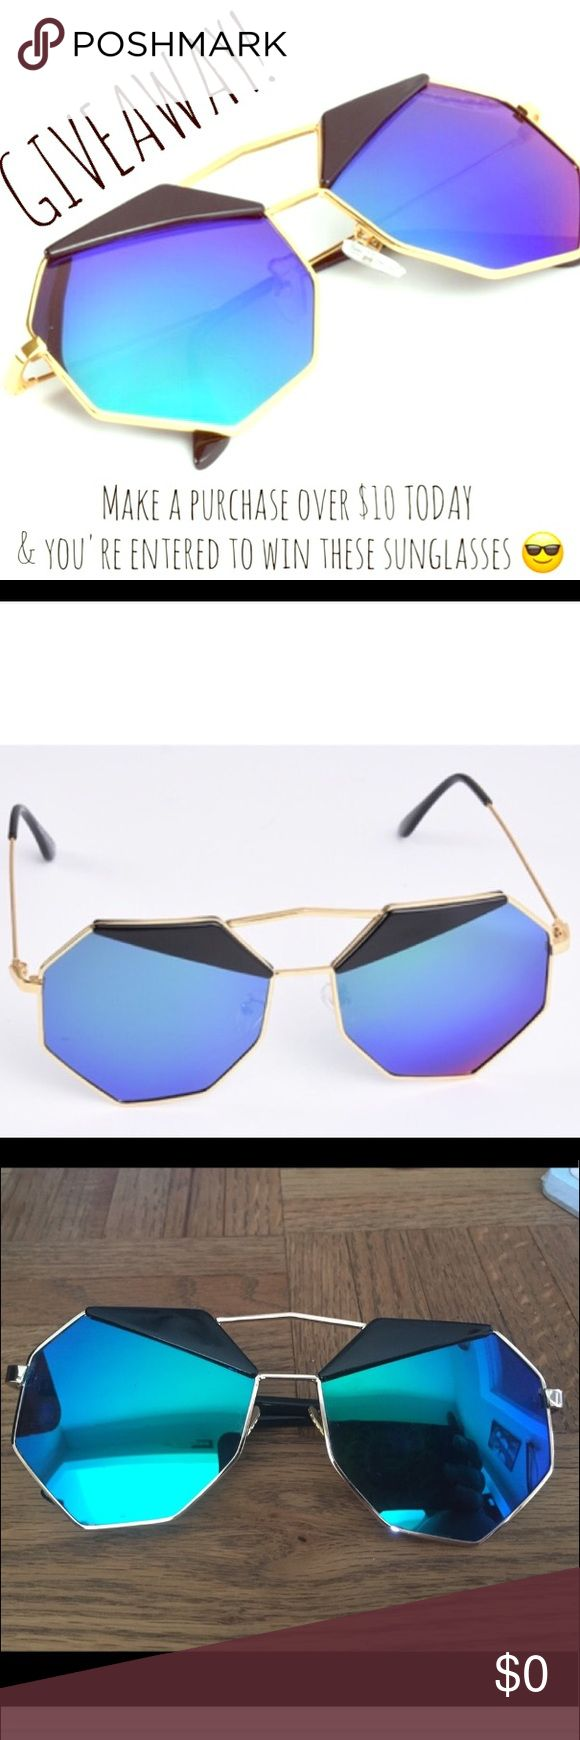 😎GIVEAWAY!!!!😎 Any purchases over $10 TODAY ONLY will be entered to win theses sweet shades (last photo, silver and blue pair). These are definitely festival shades! Geometric stylized fashionable shades, great for music fests, concerts and raves. Accessories Glasses